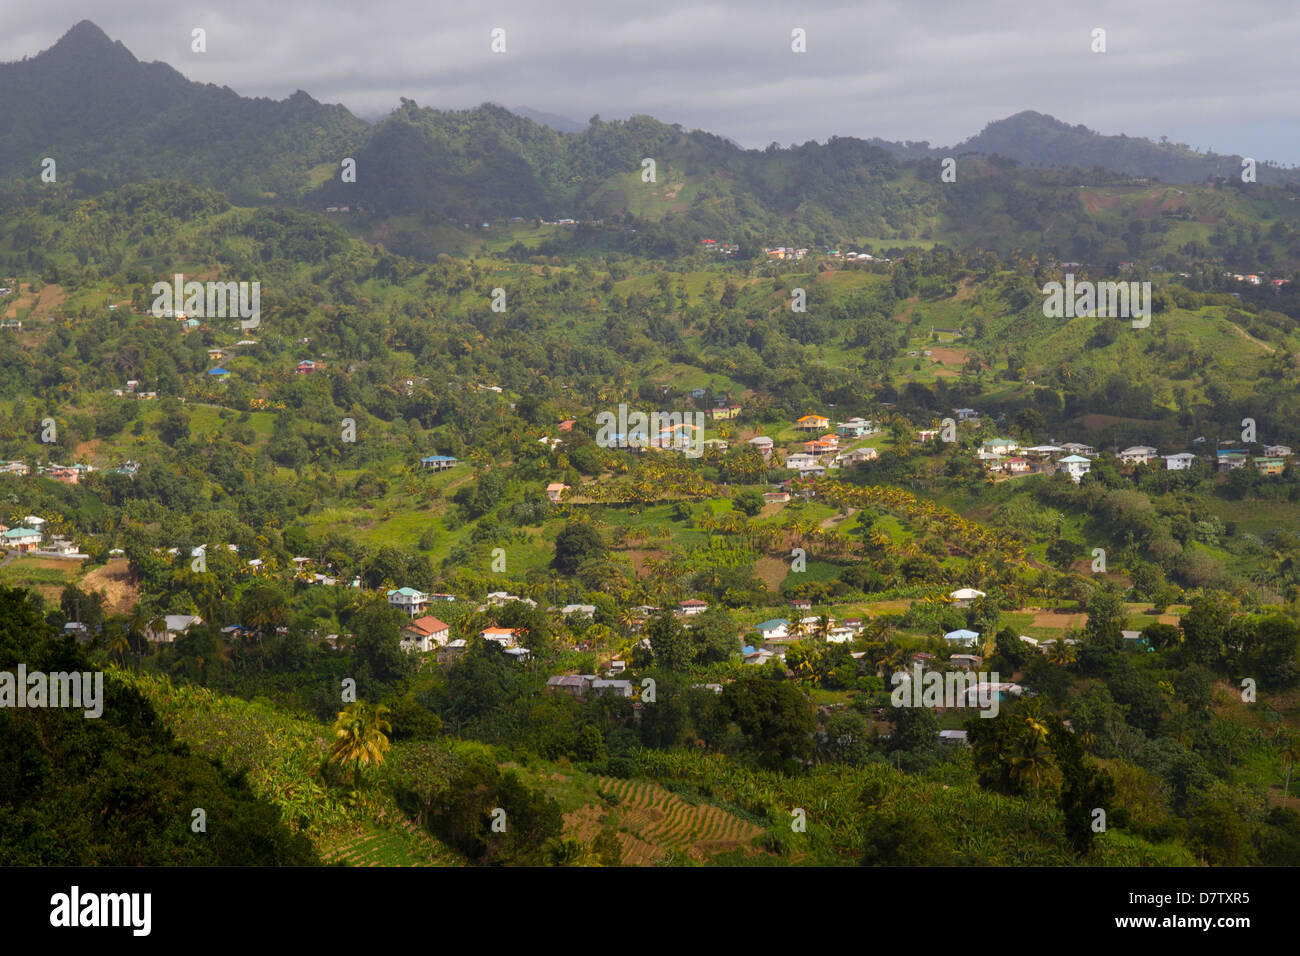 Mesopotamia Valley, near Kingstown, St. Vincent, St. Vincent and the Grenadines, Windward Islands, West Indies, - Stock Image